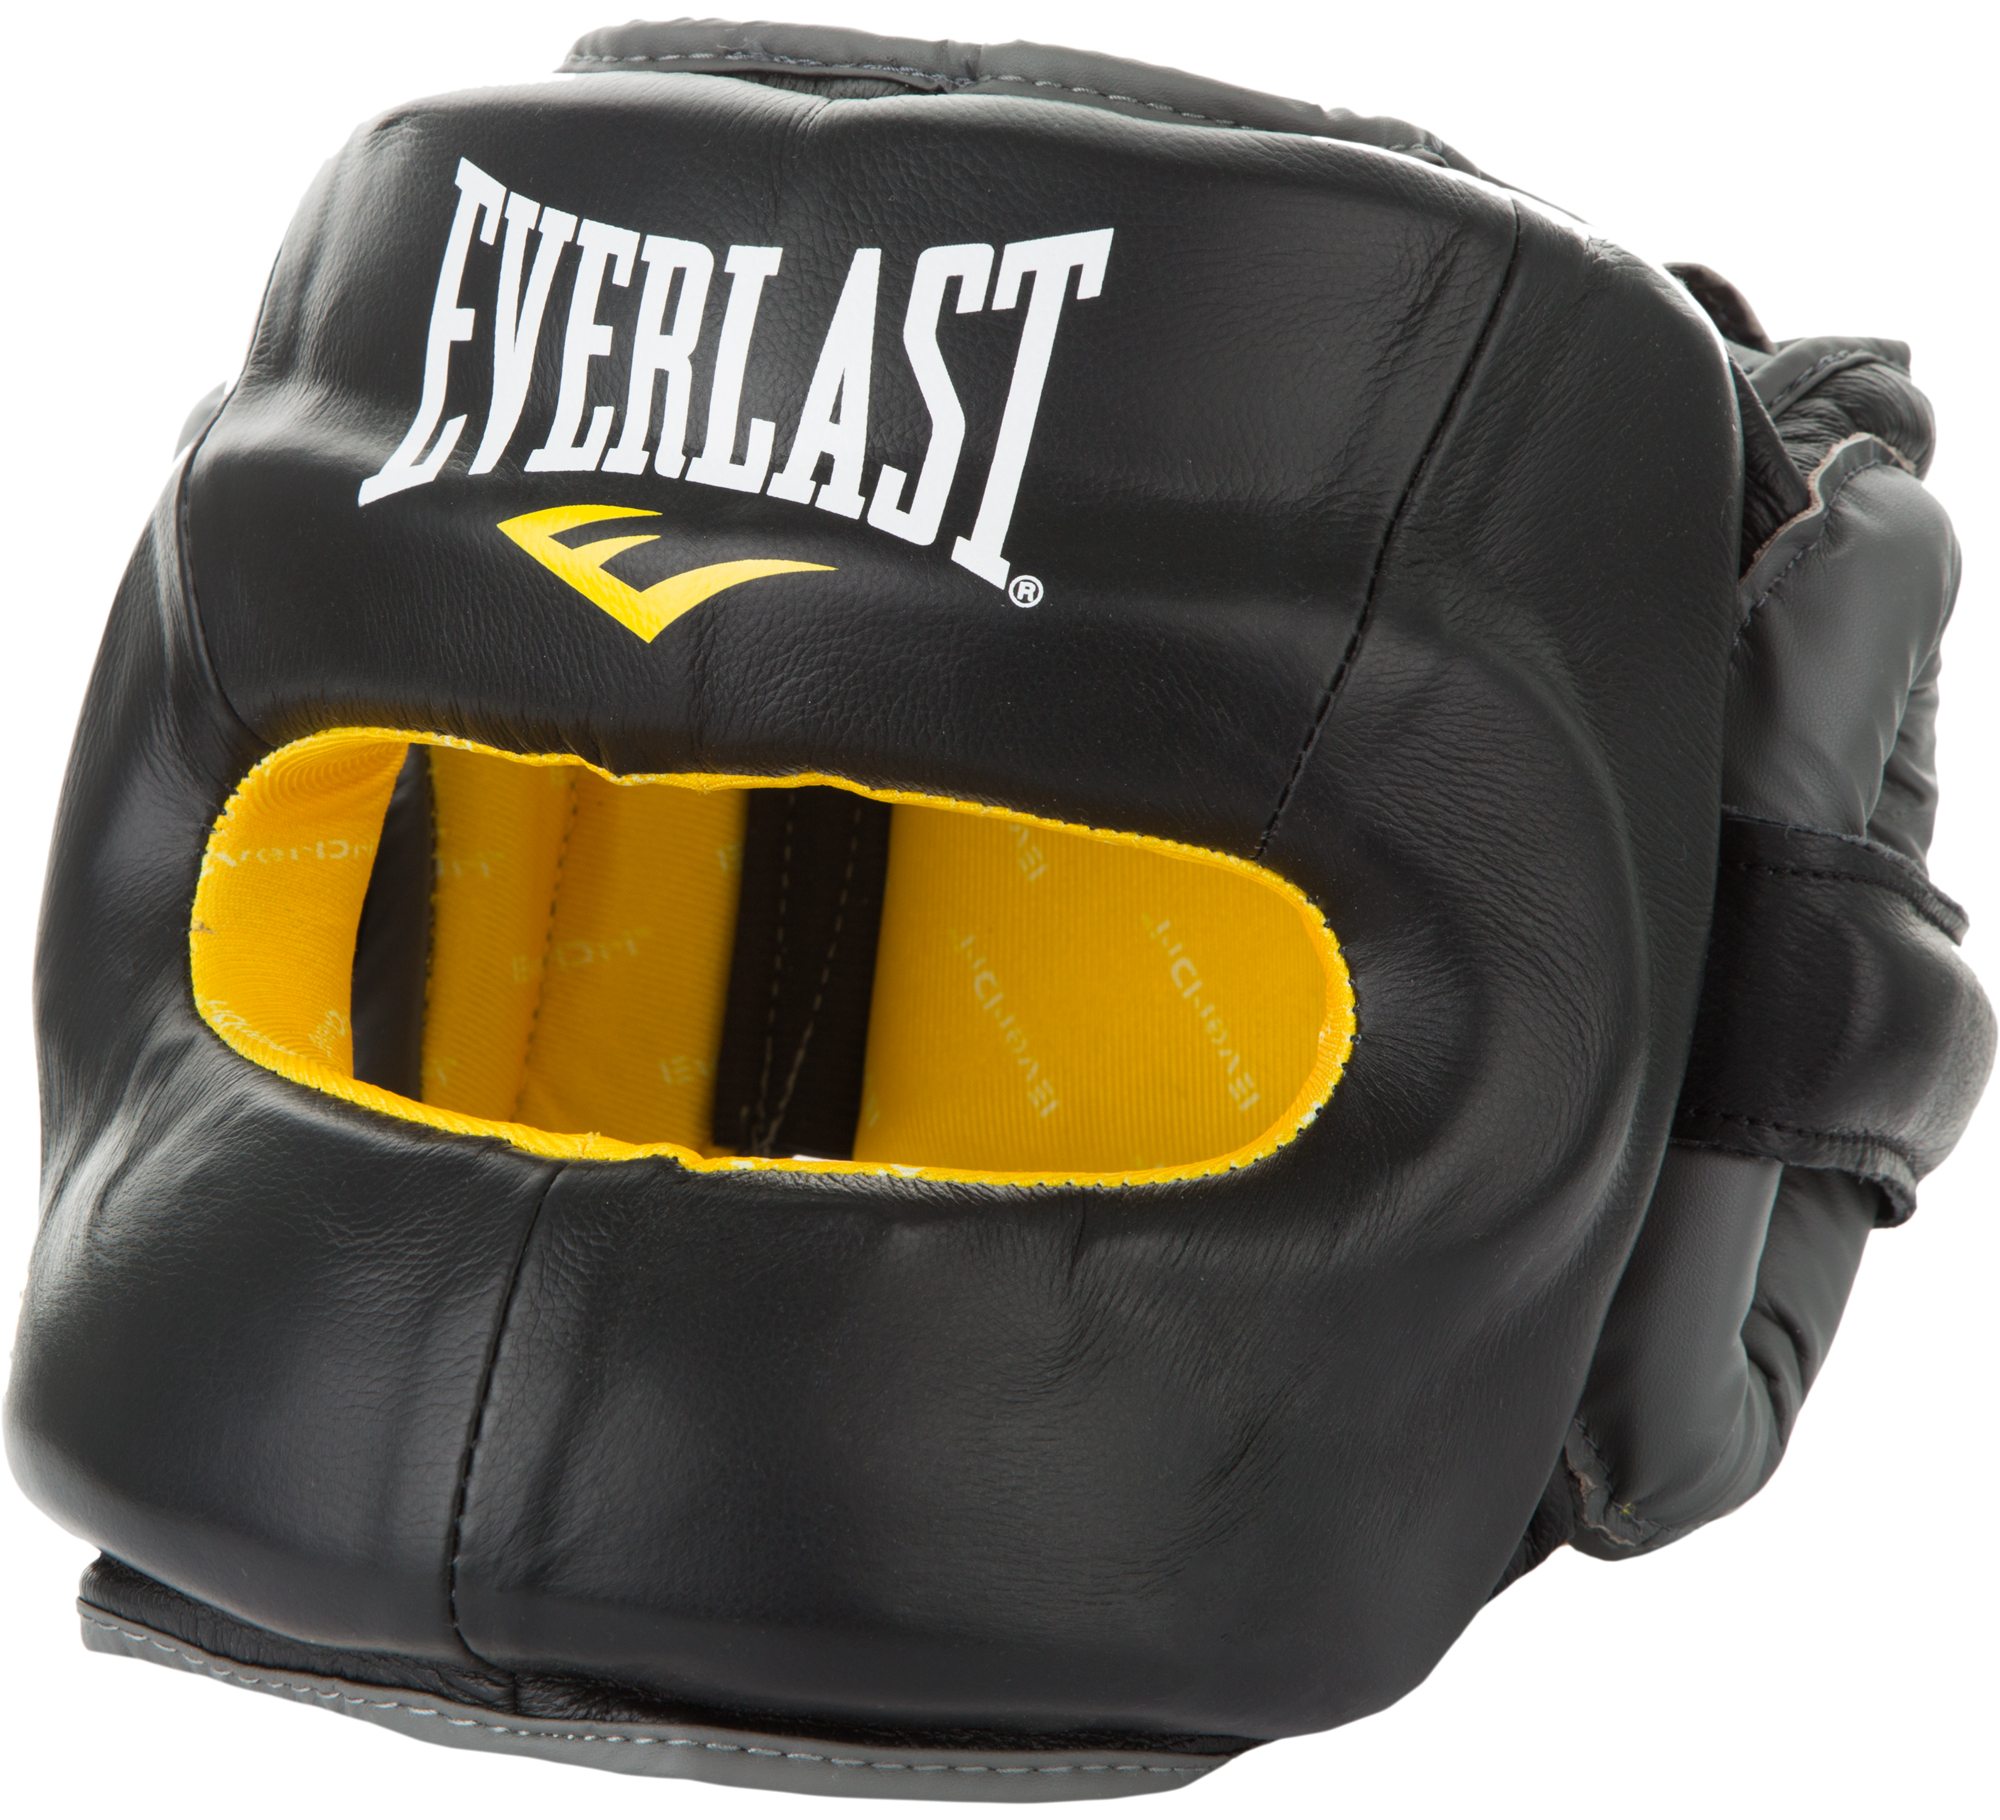 Everlast Шлем Everlast SaveMax everlast шлем everlast evercool